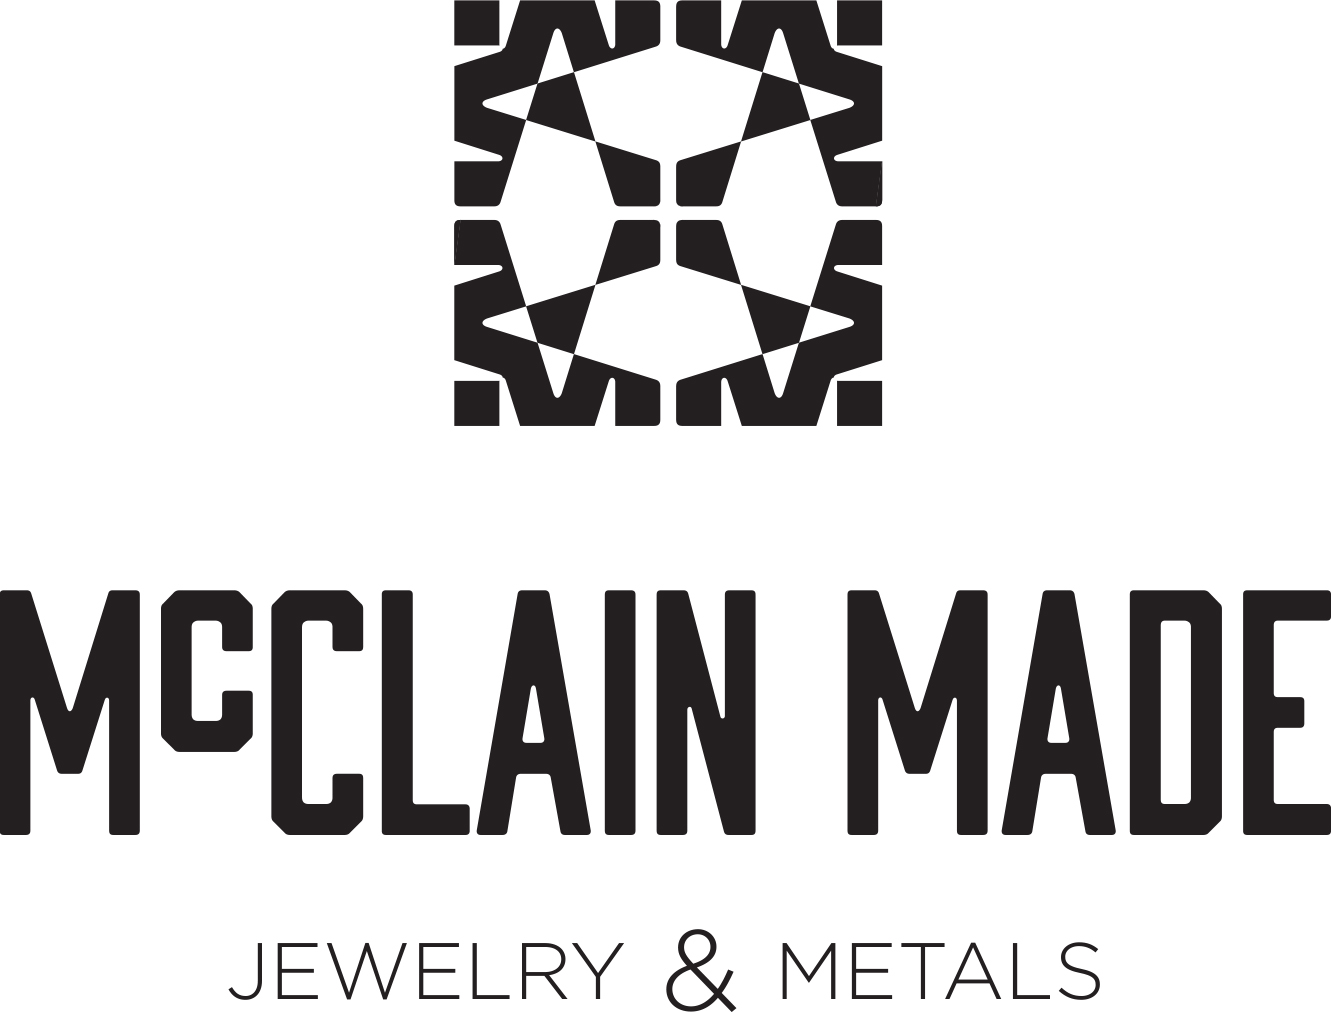 McClain Made│Jewelry & Metals